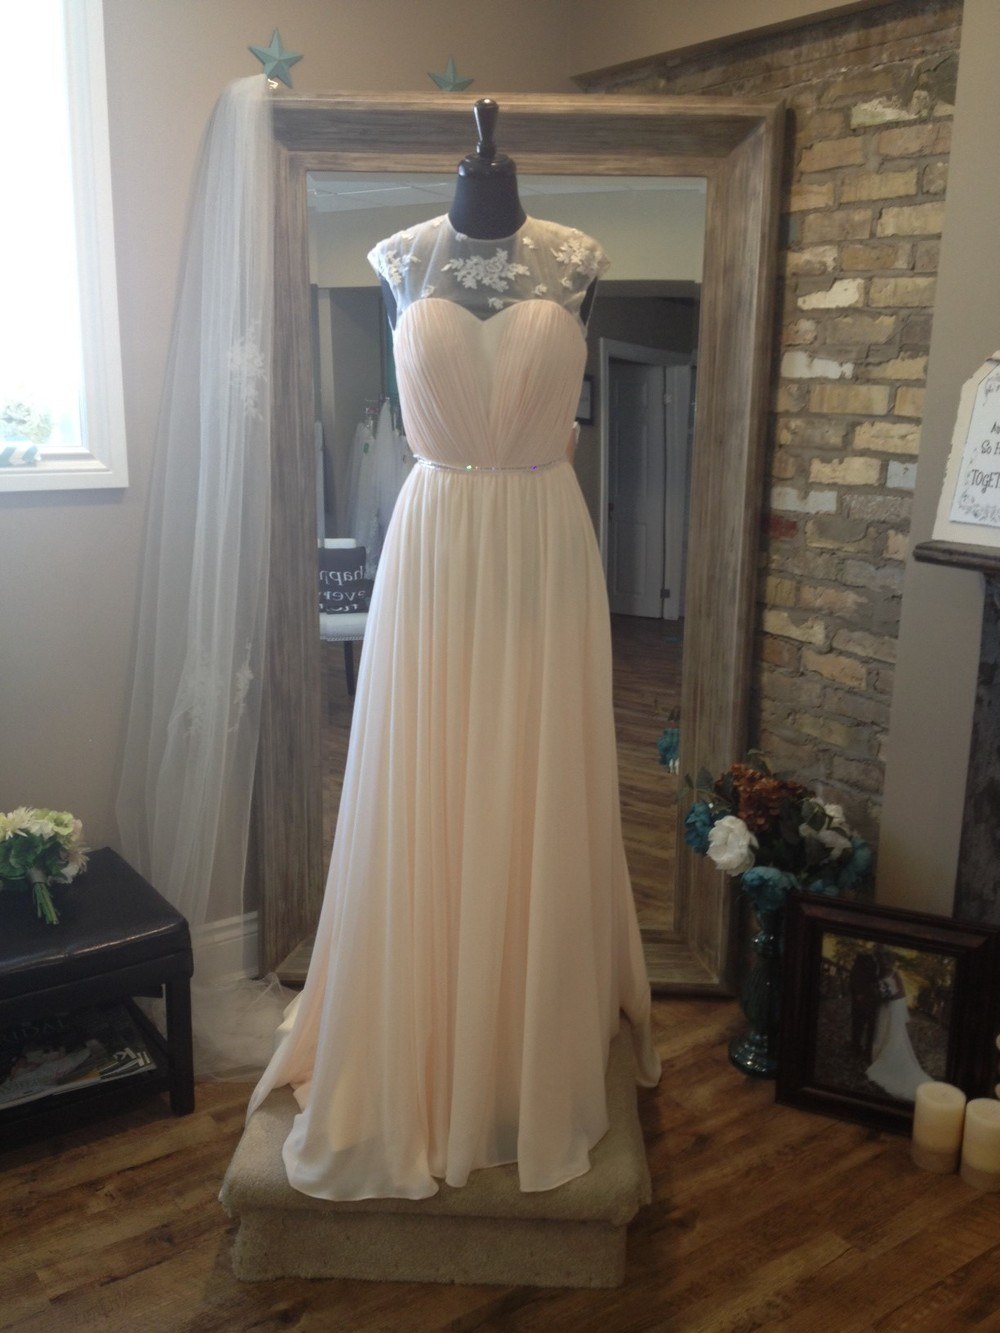 This flowy chiffon gown is perfect for a summer wedding.  With just a touch of lace & adding a touch of sparkle, you combine comfort with elegance.  This gown is sold exclusively at Once Upon A Time Weddings.